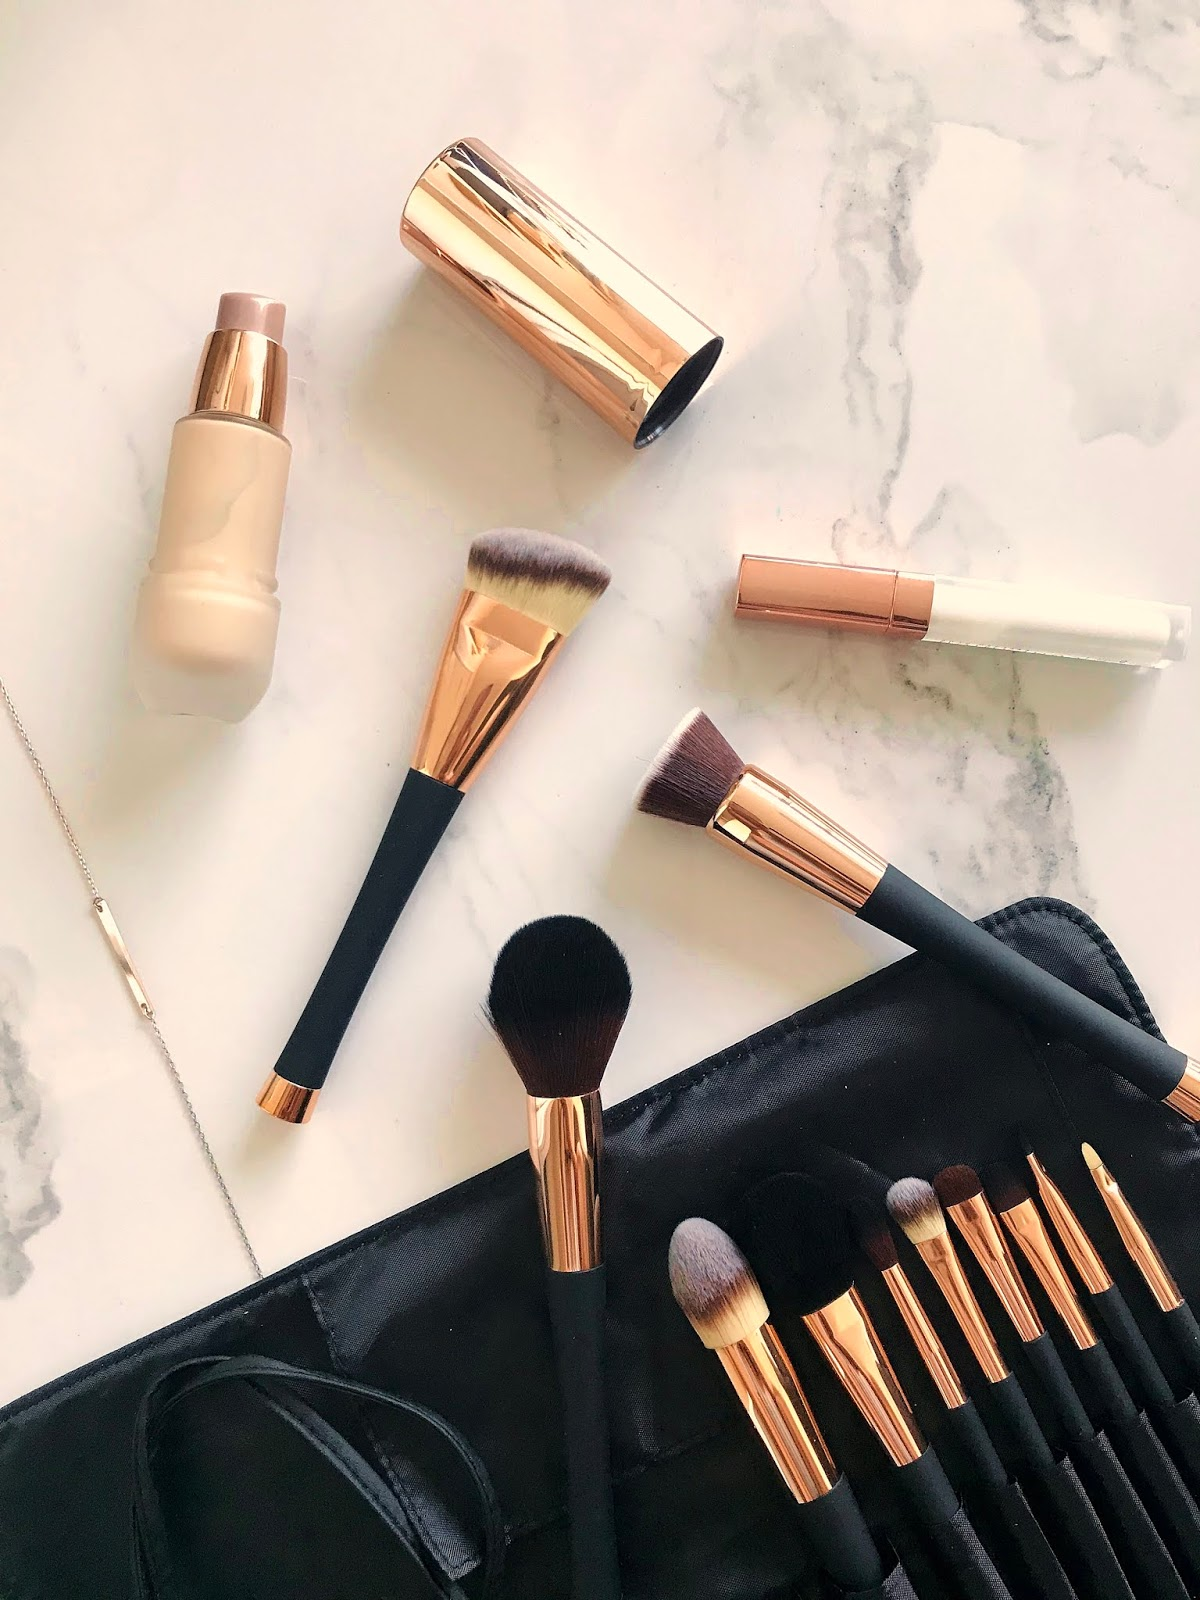 18c6a29f85e5d Today s post is about the prettiest rose gold makeup brushes from Fancii.  The set I m featuring in this post is the Aria Professional Makeup Brush ...